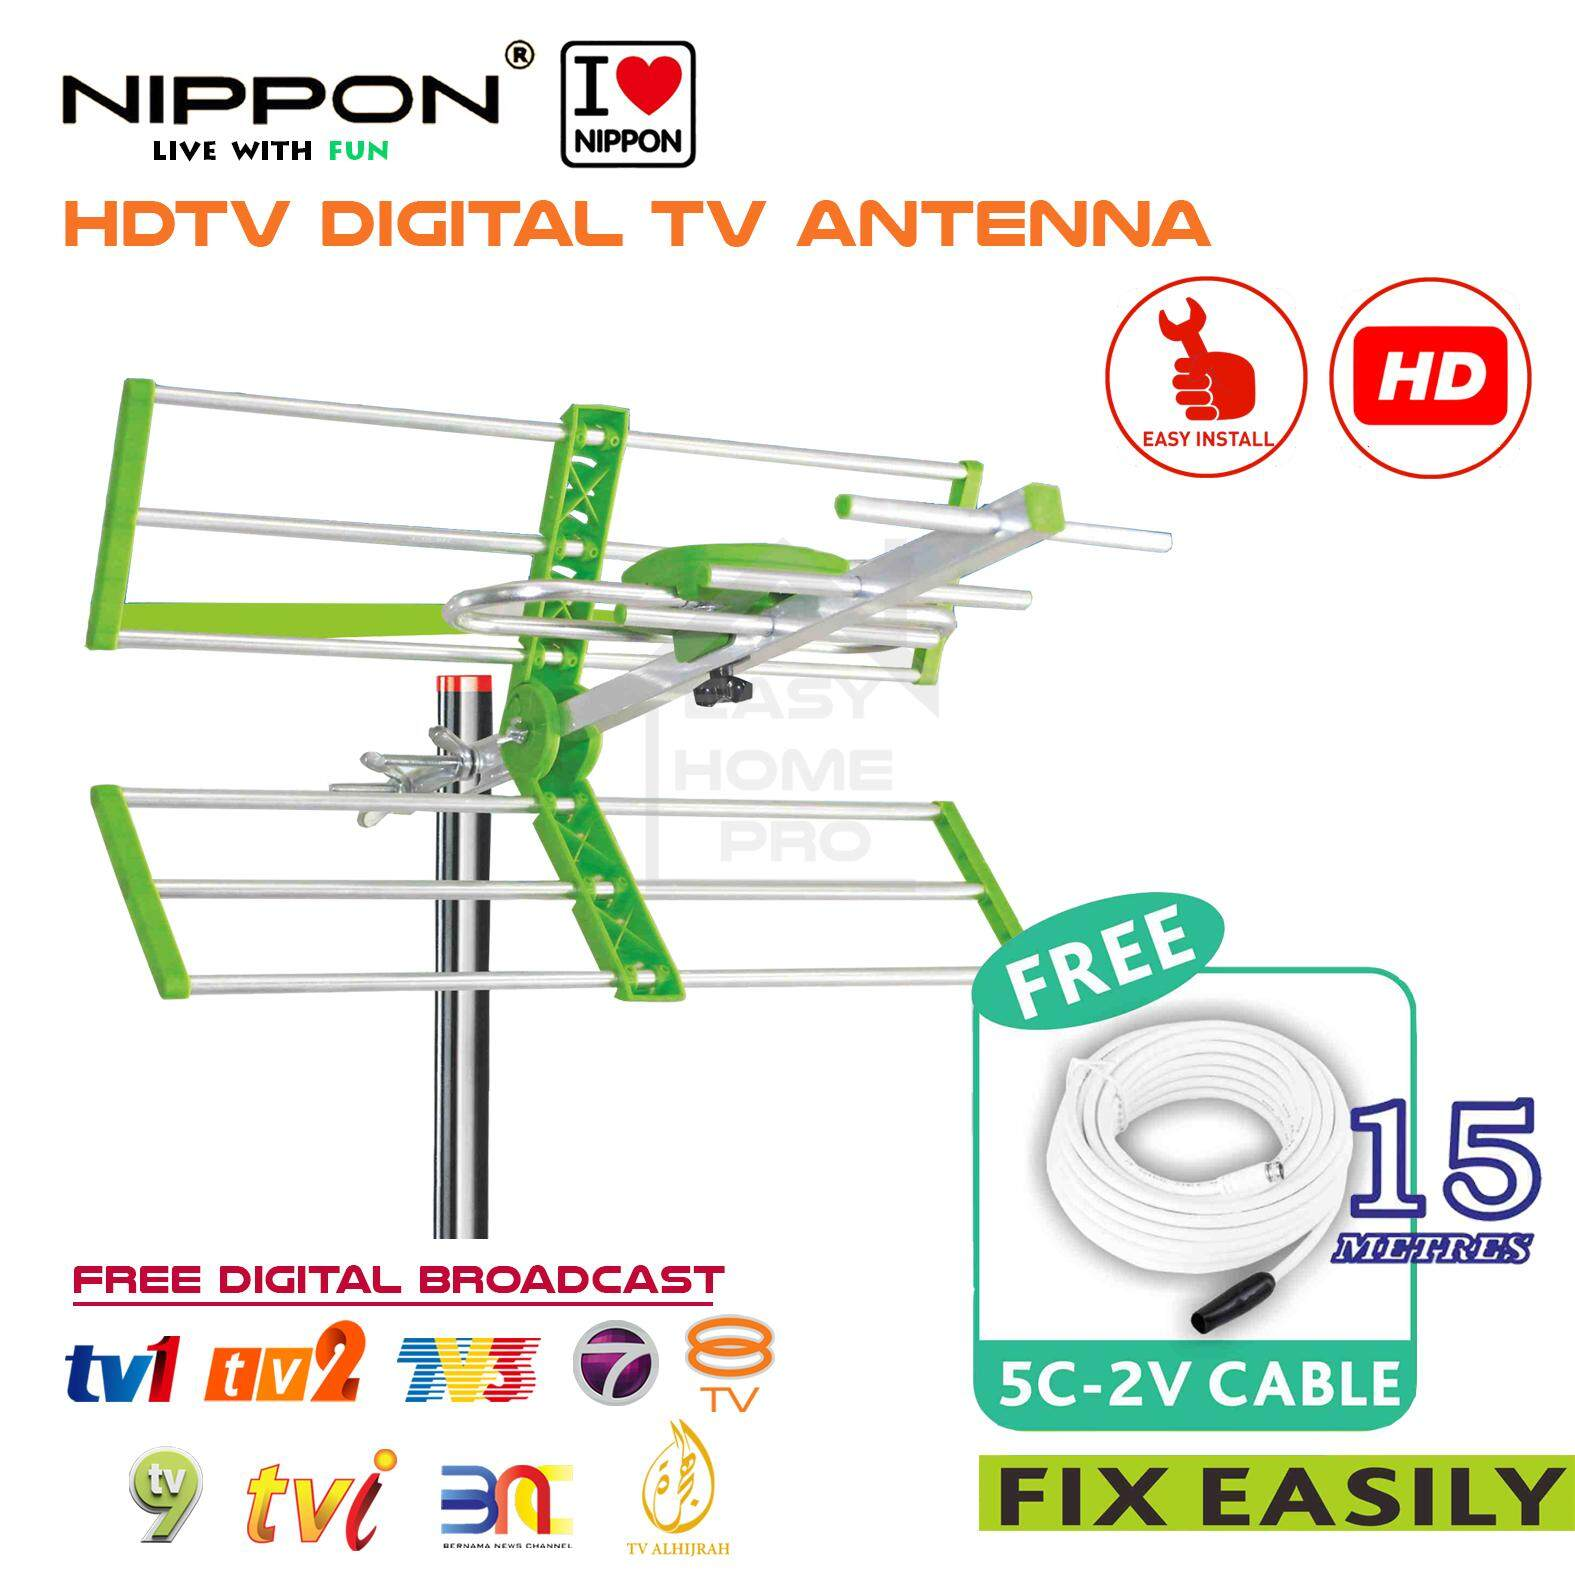 hight resolution of nippon 2019 version na 507 digital tv antenna free cable 15m watch mytv